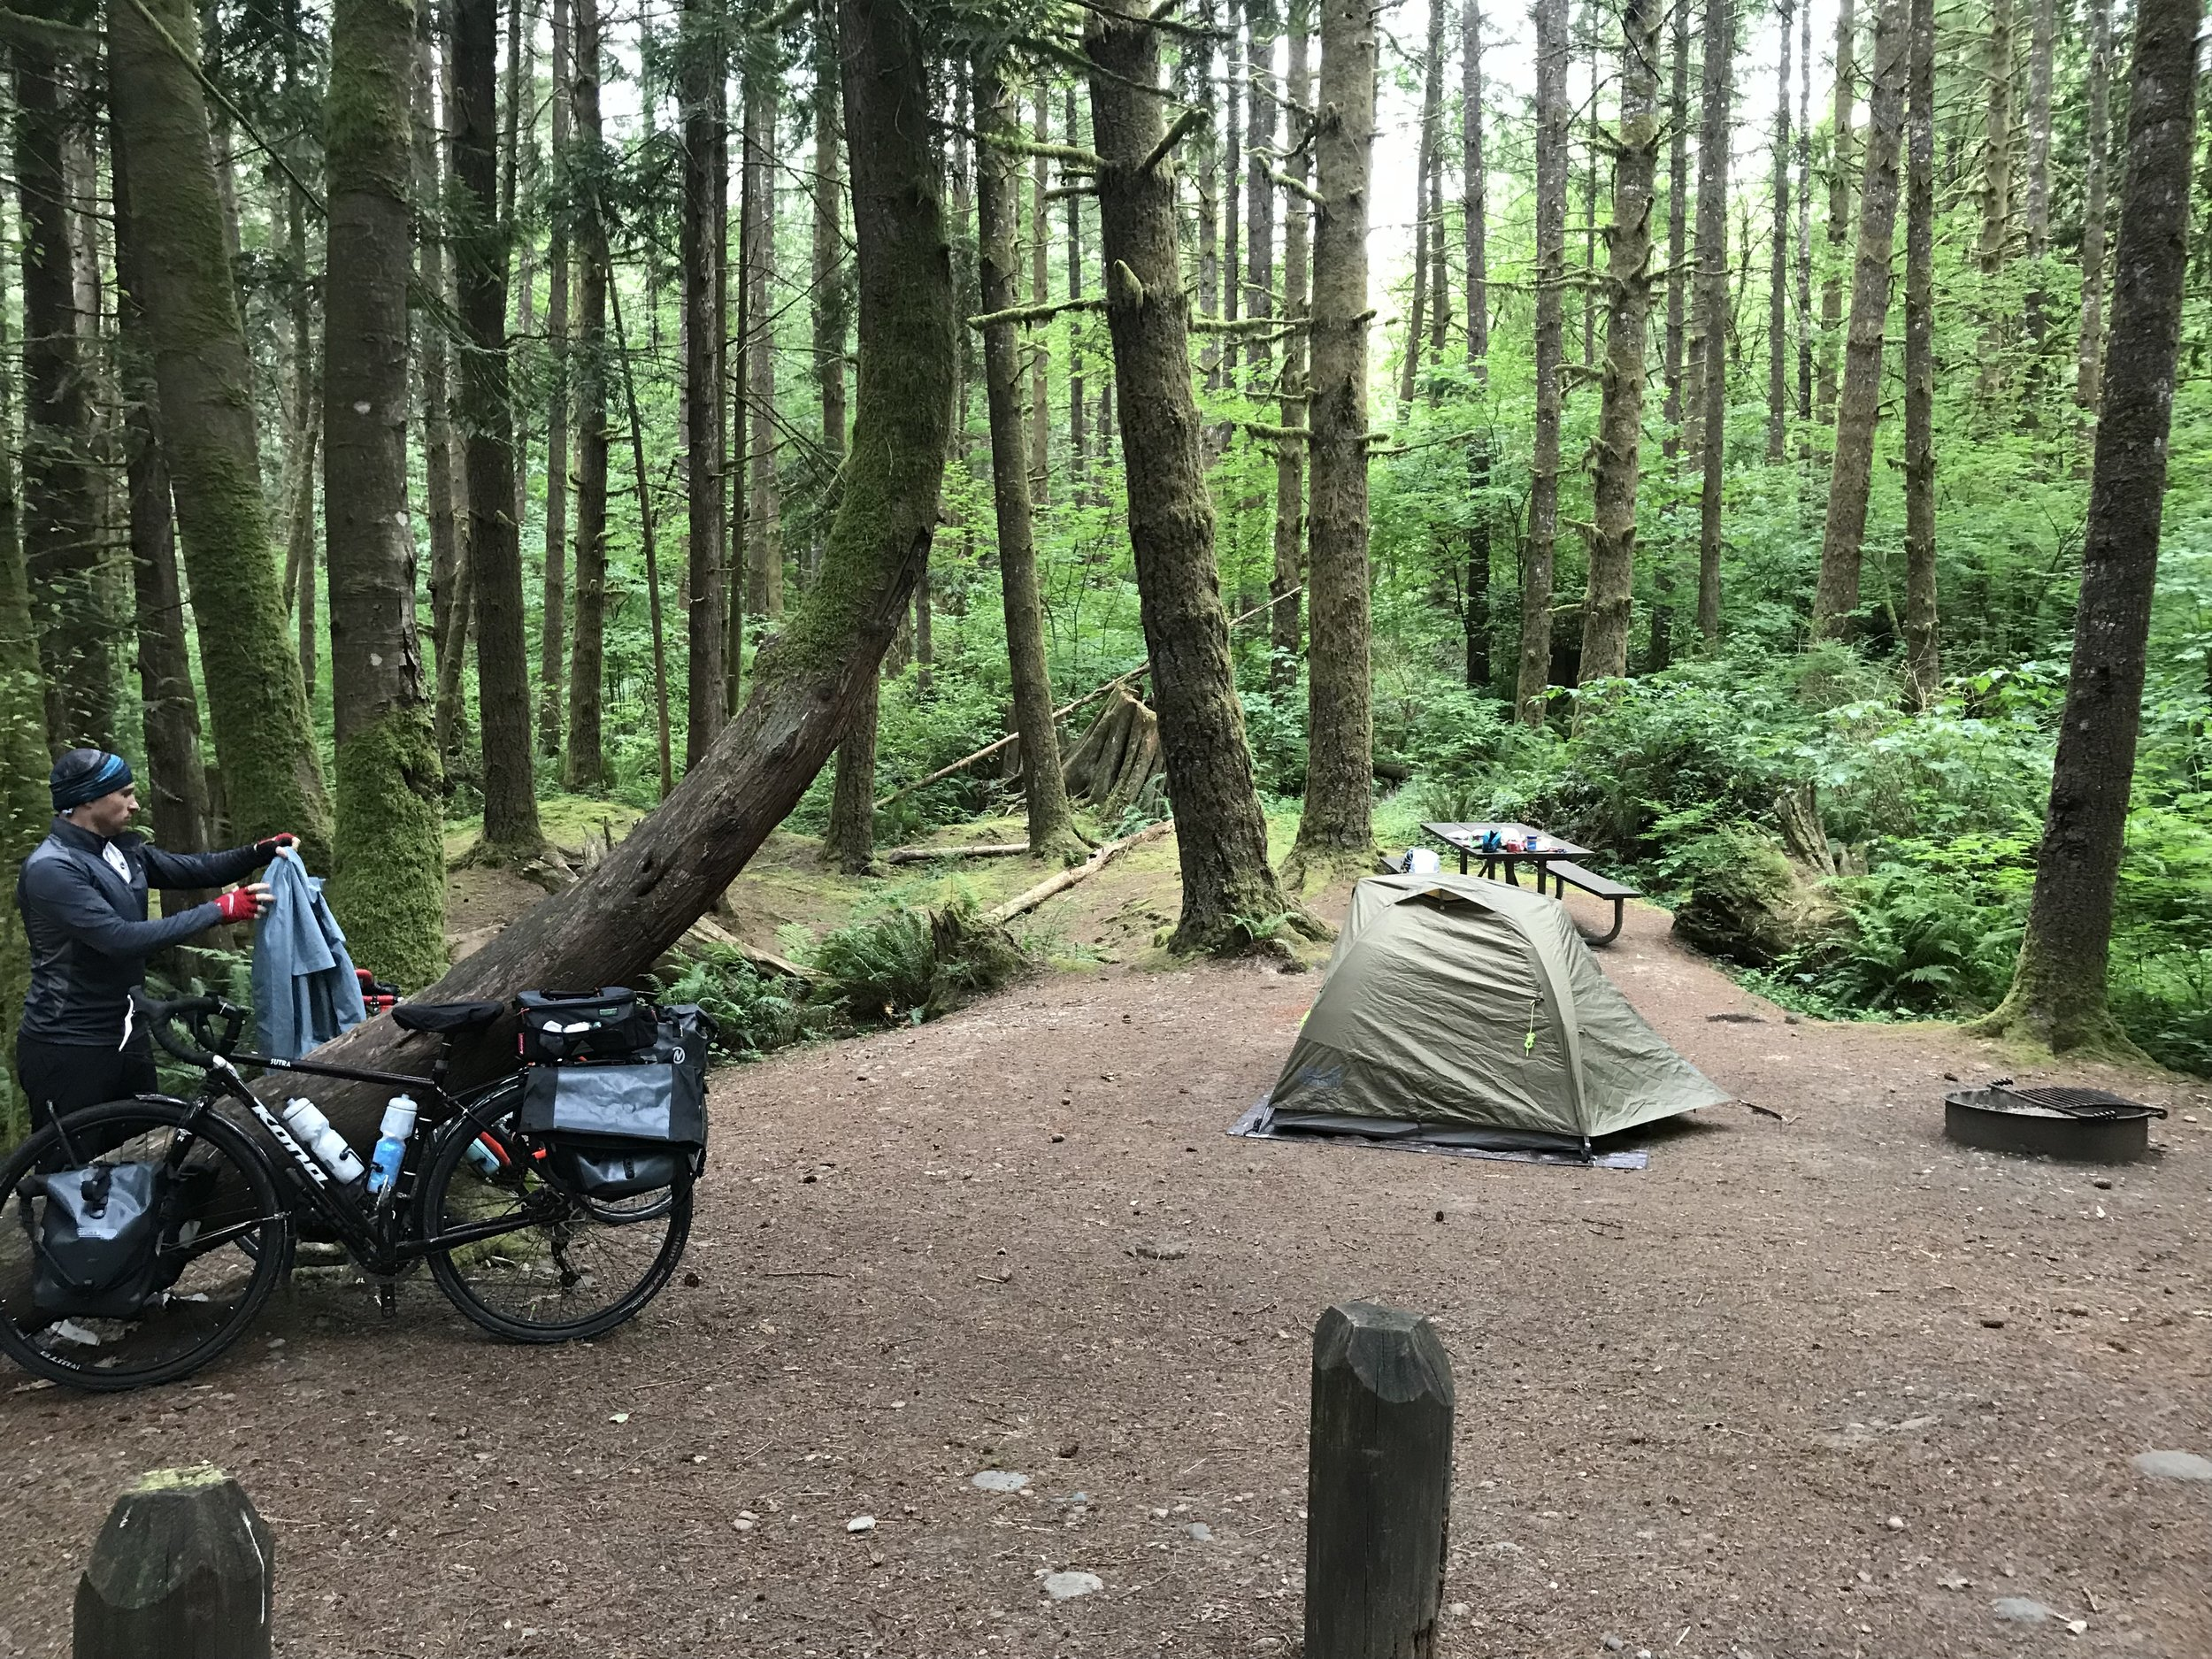 Our rainy little campsite at Lewis and Clark State Park.